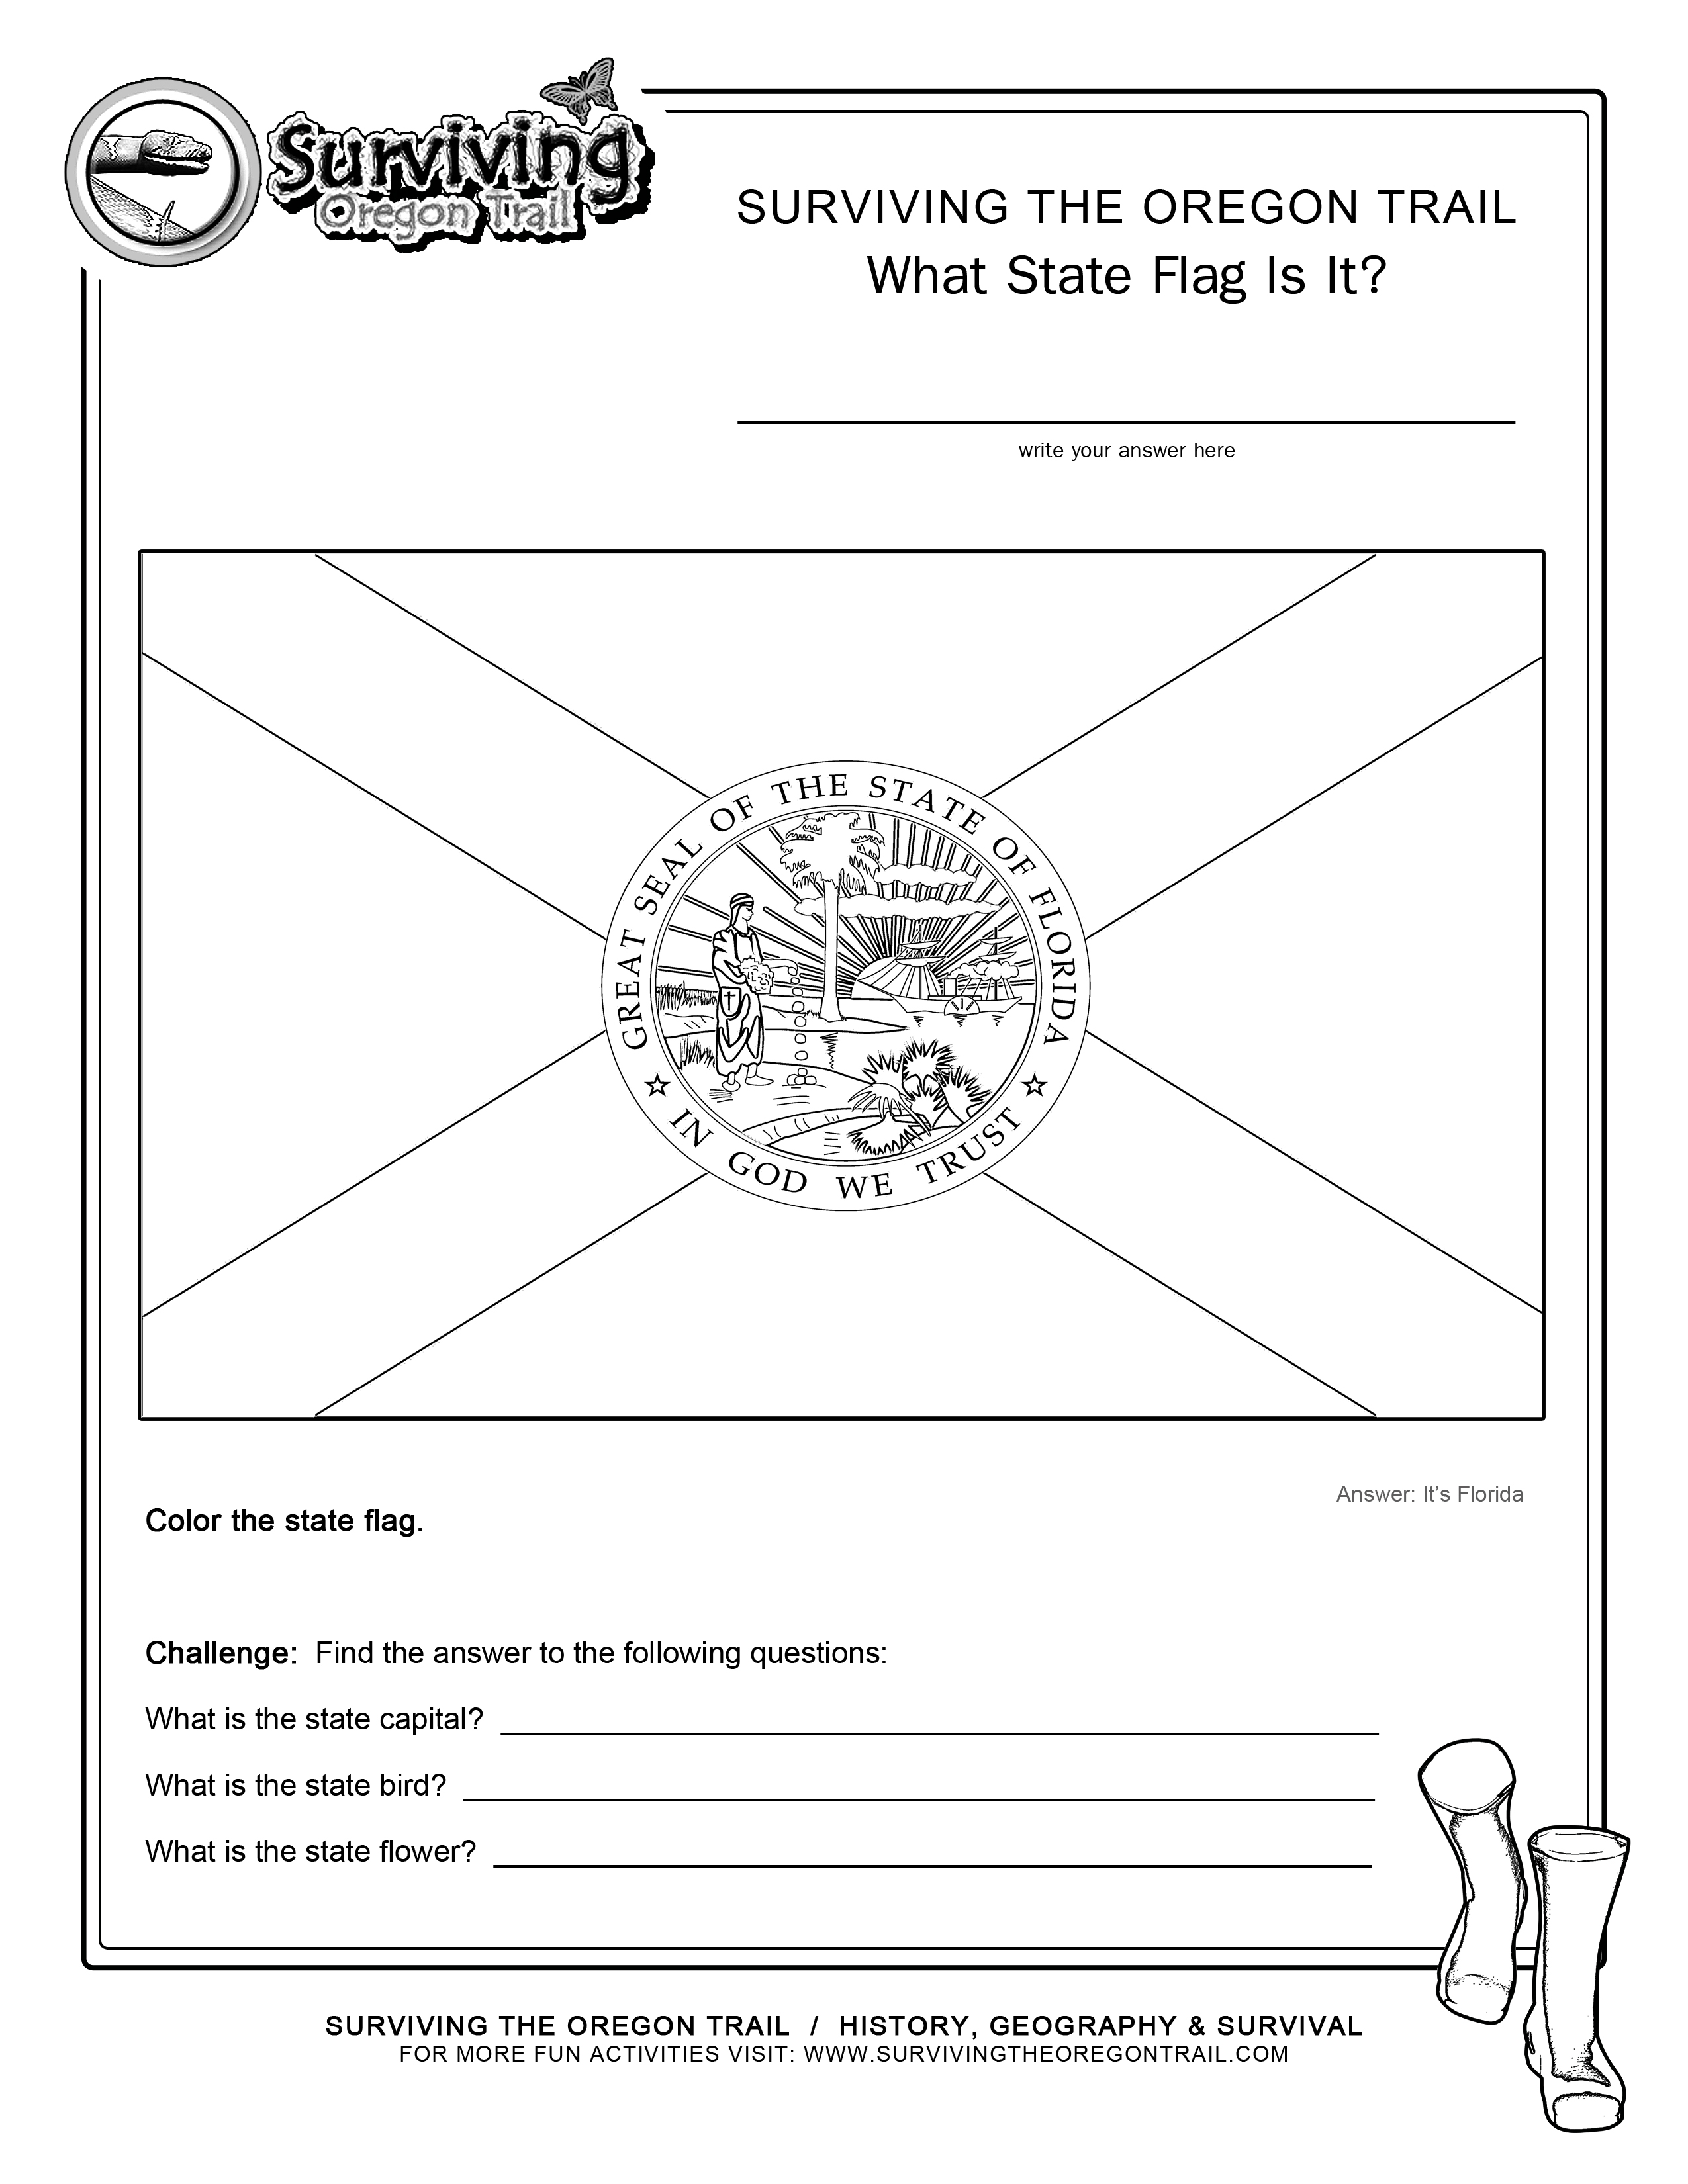 Card From Florida Coloring page | Flag coloring pages, Coloring ... | 3300x2550